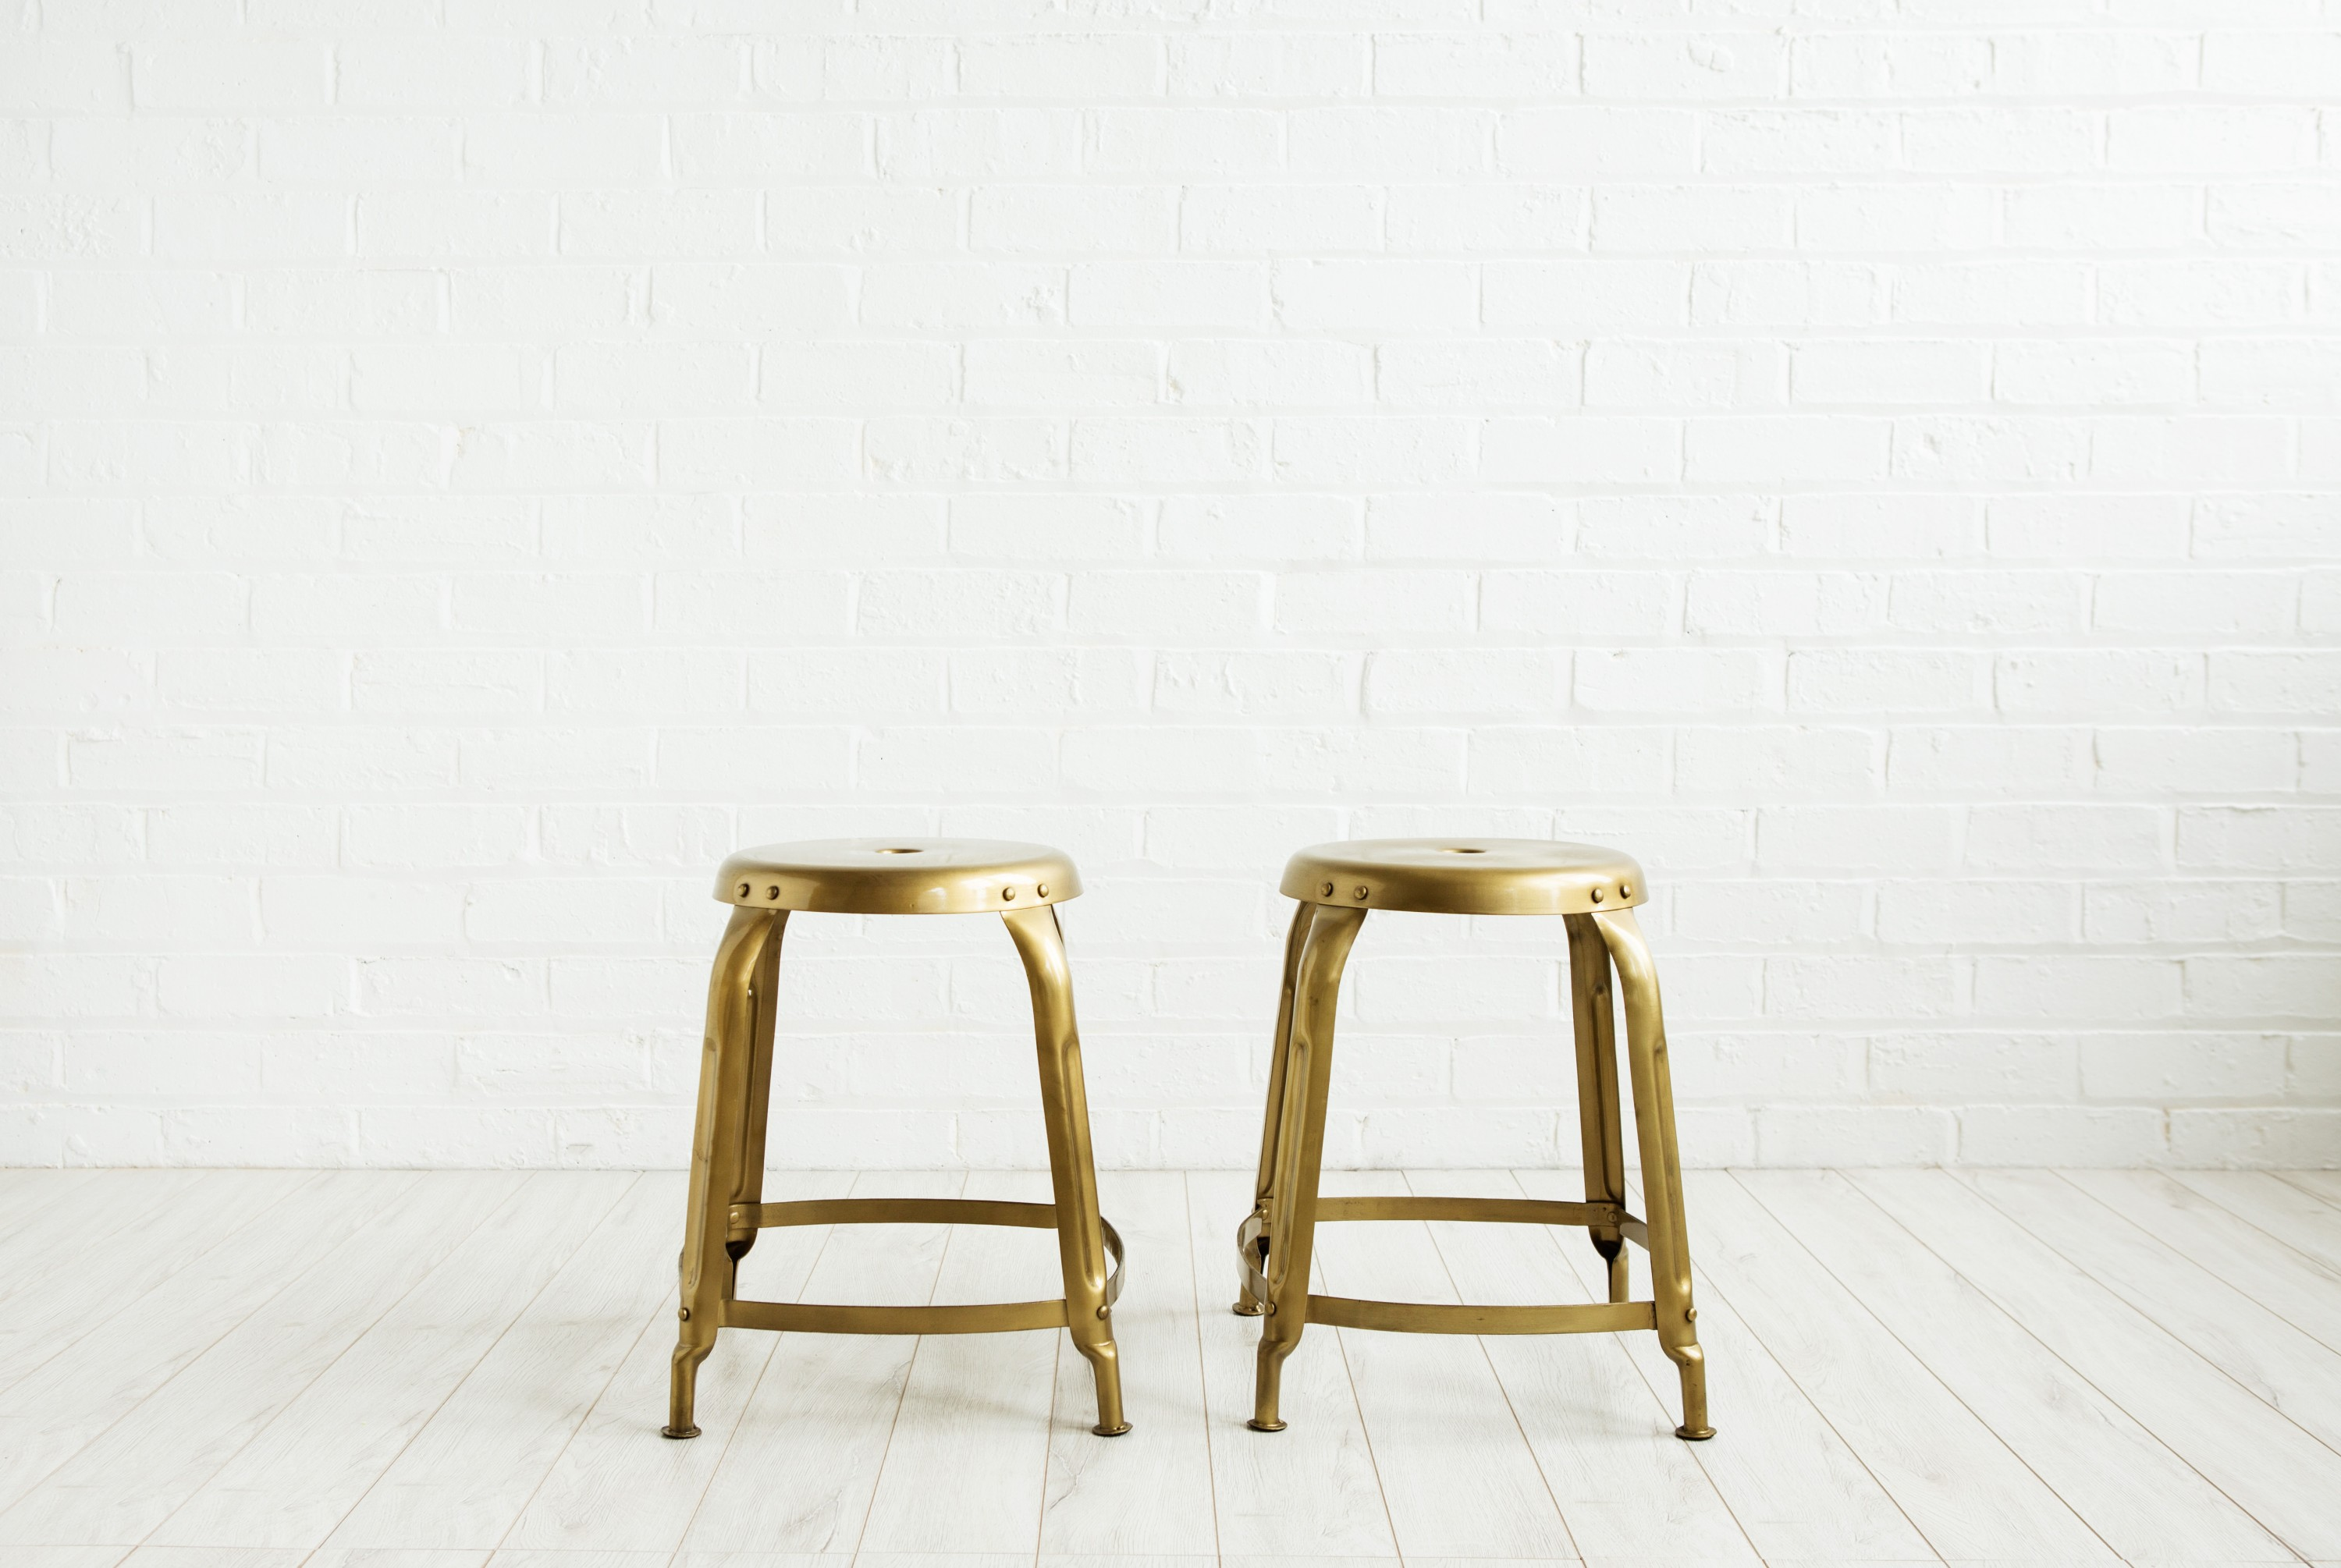 Pair of Gold Stools - vintage and antique furniture shop ceraudo